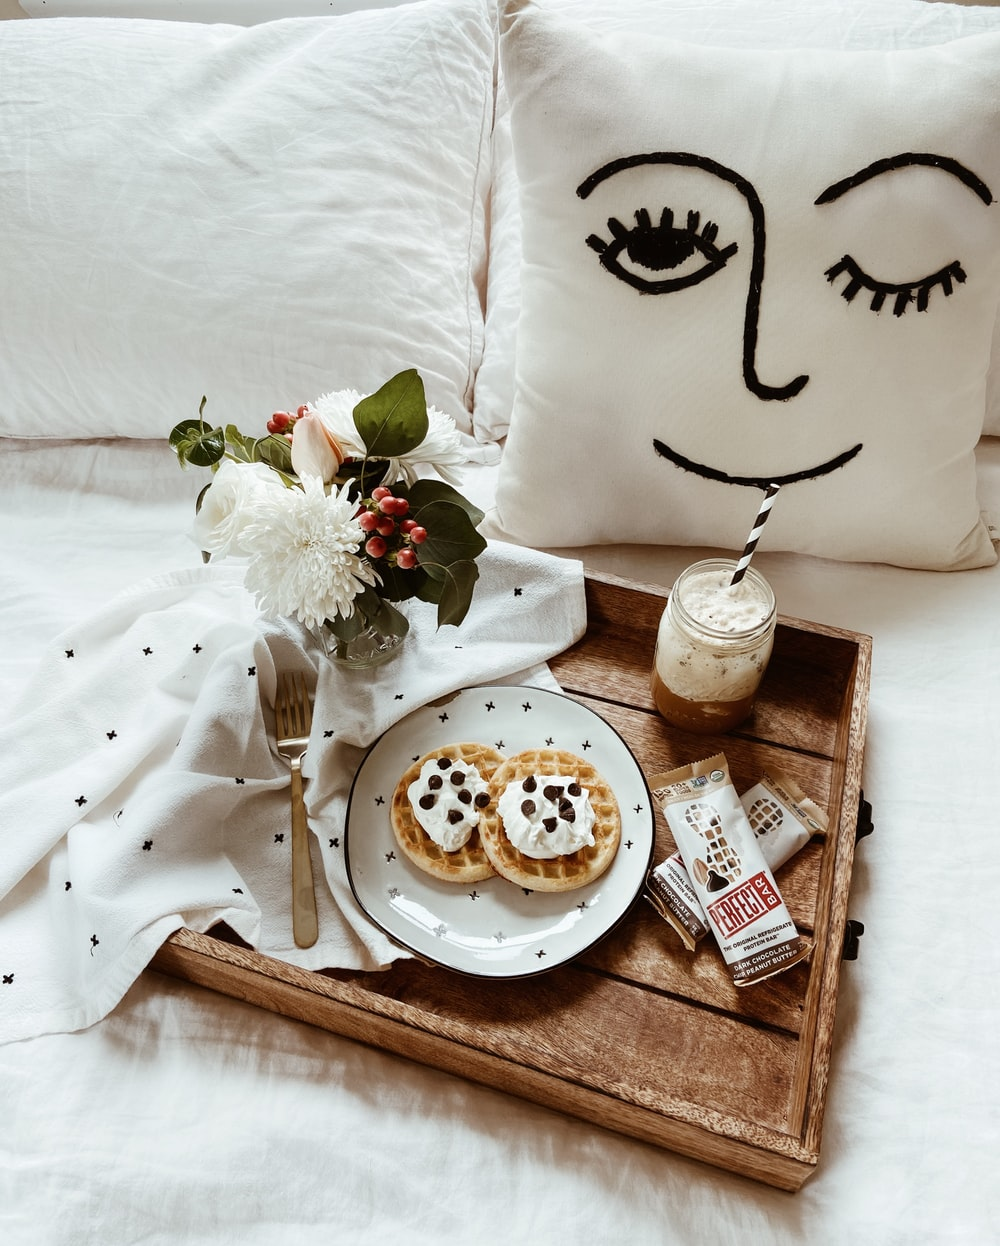 white ceramic plate with food on brown wooden tray